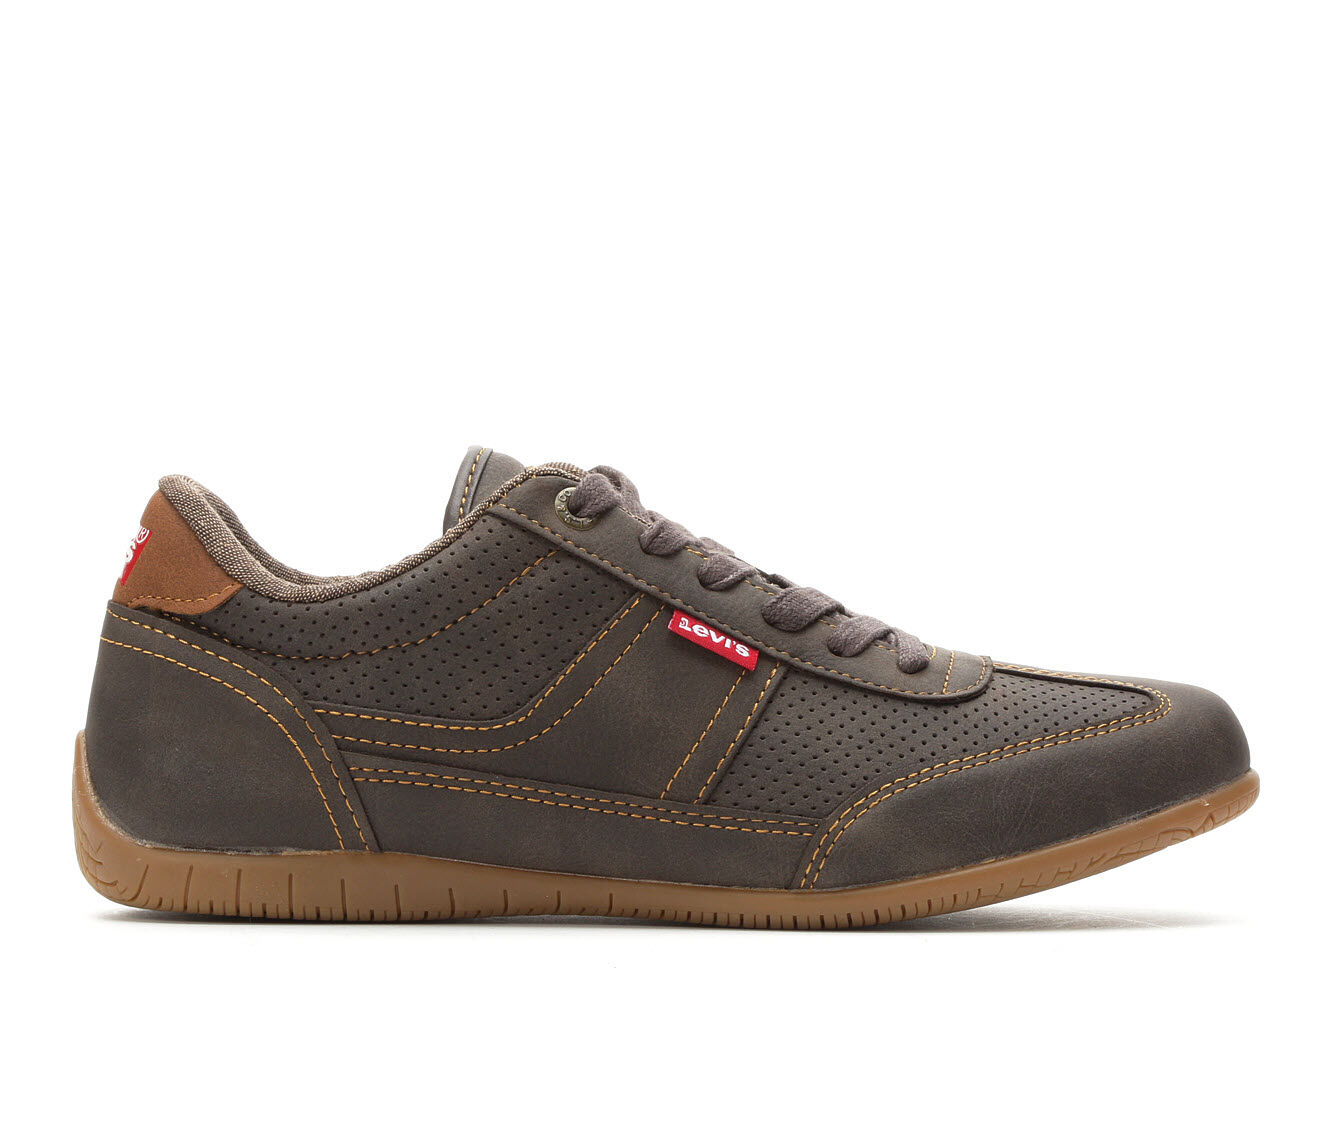 choose comfortable authentic Men's Levis Upland Waxed Casual Shoes Brown/Tan